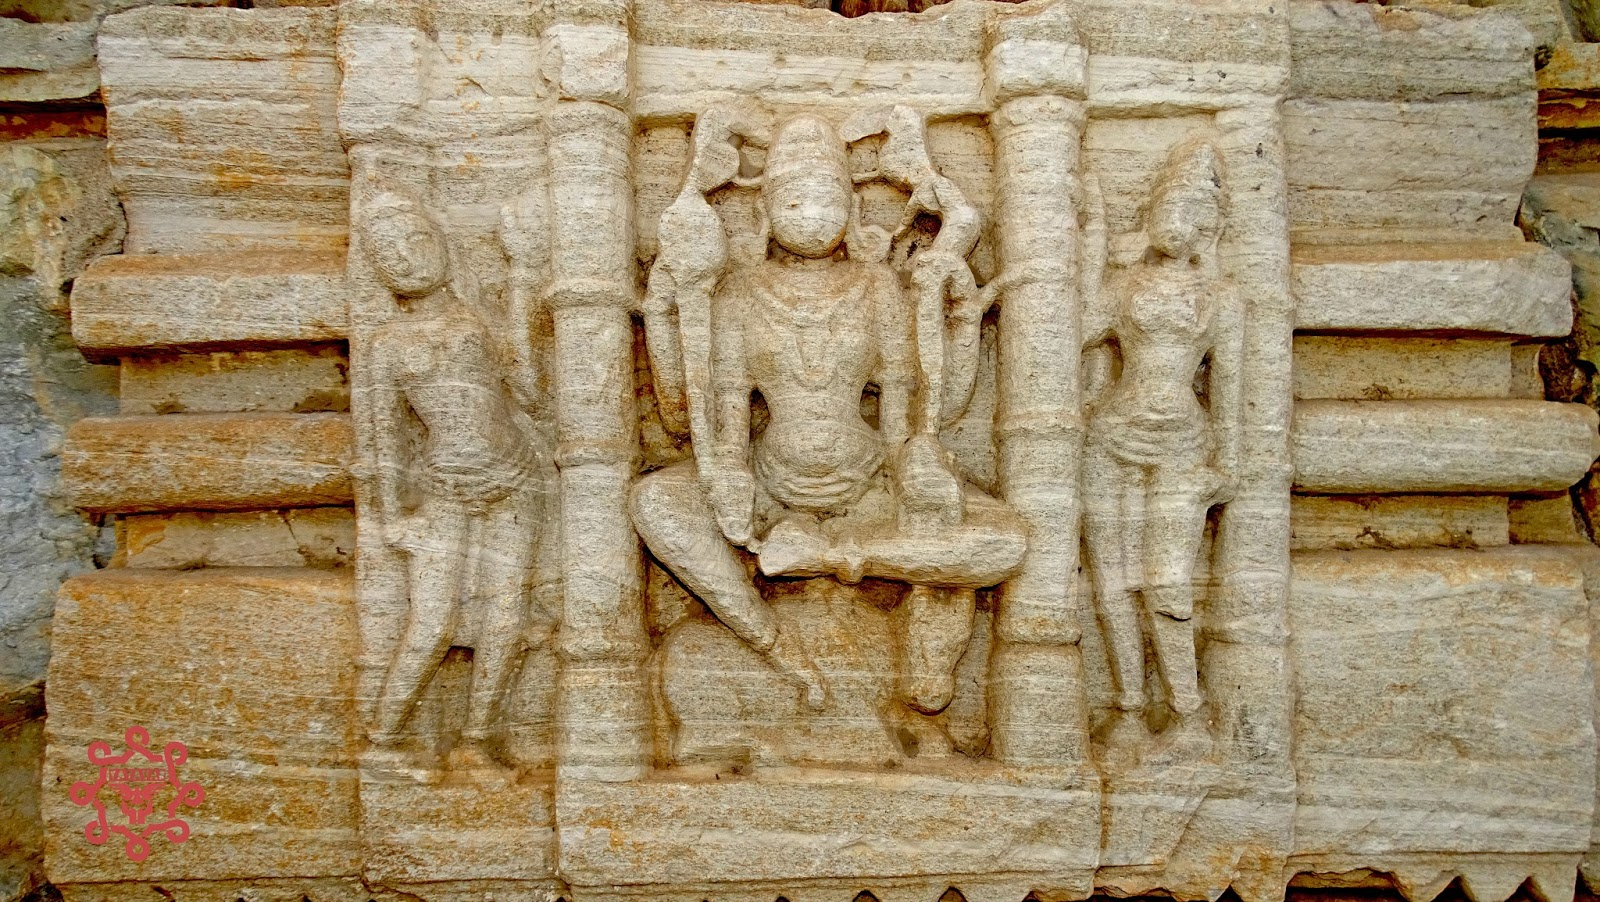 Rock Carved Statues Samadhiswar Temple Chittorgarh